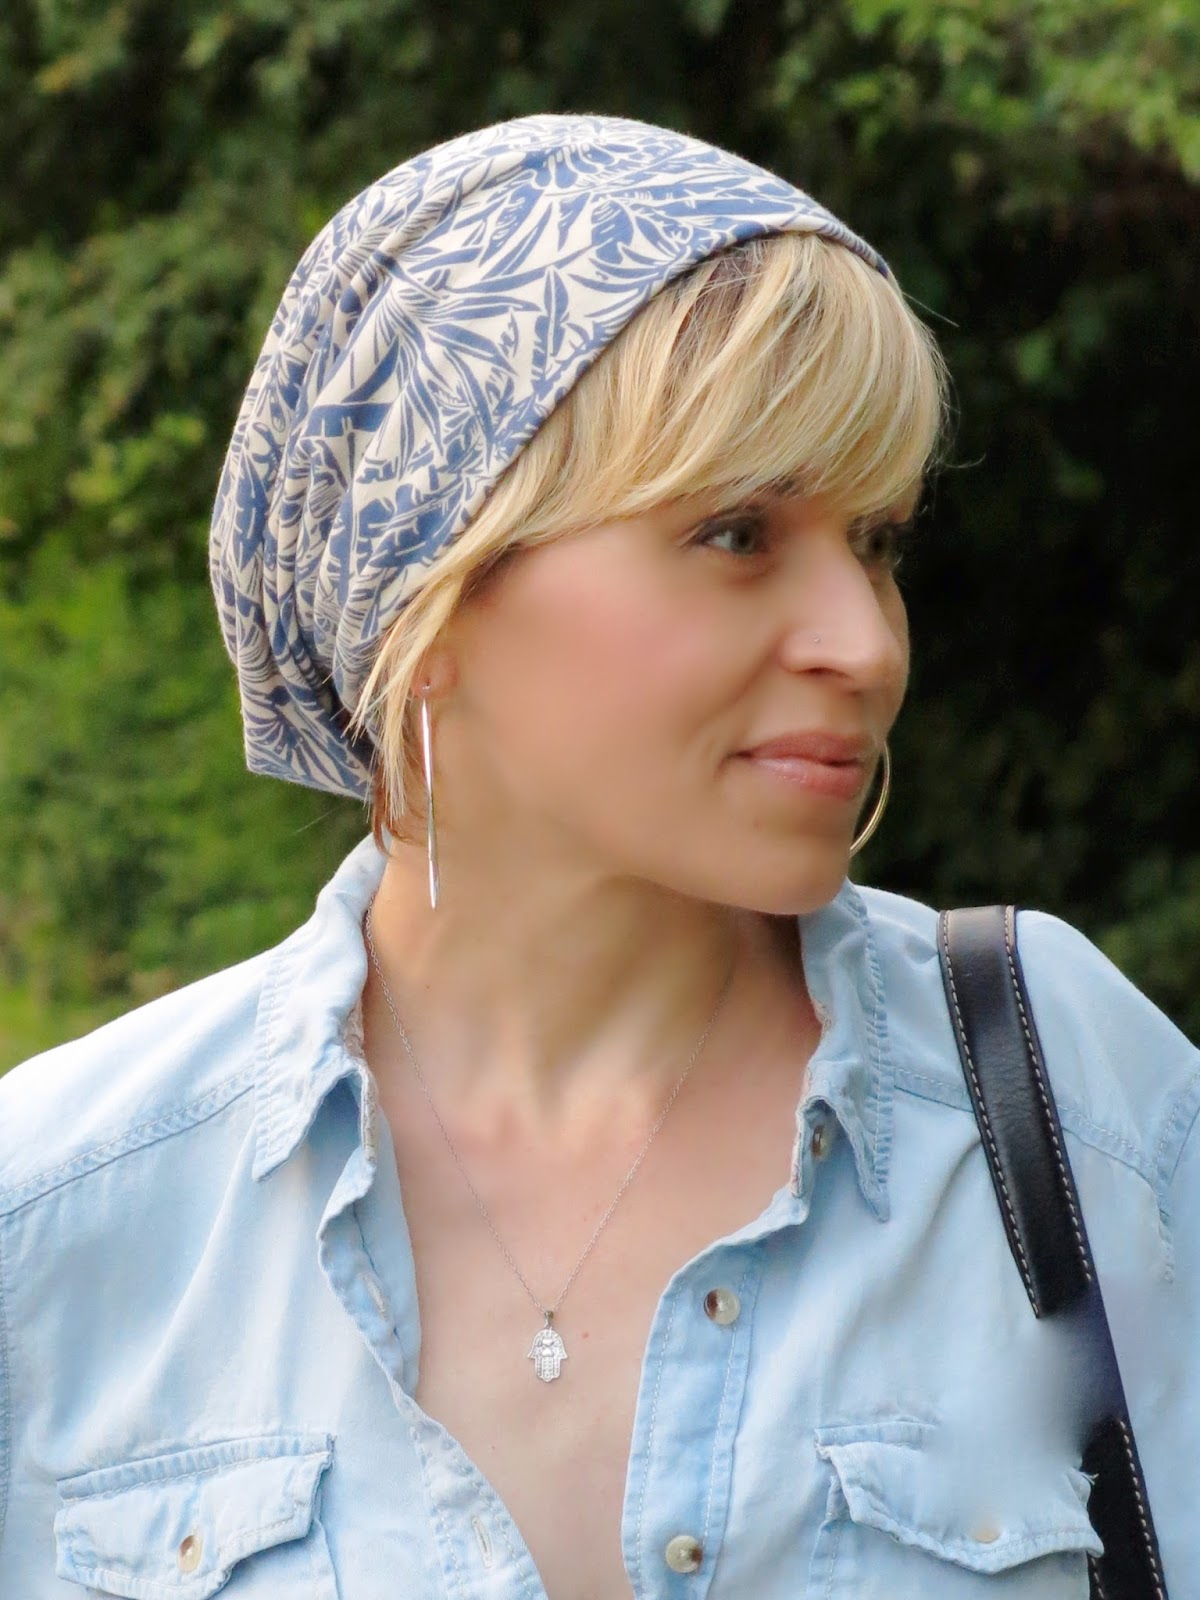 chambray shirt, patterned beanie, and hoop earrings